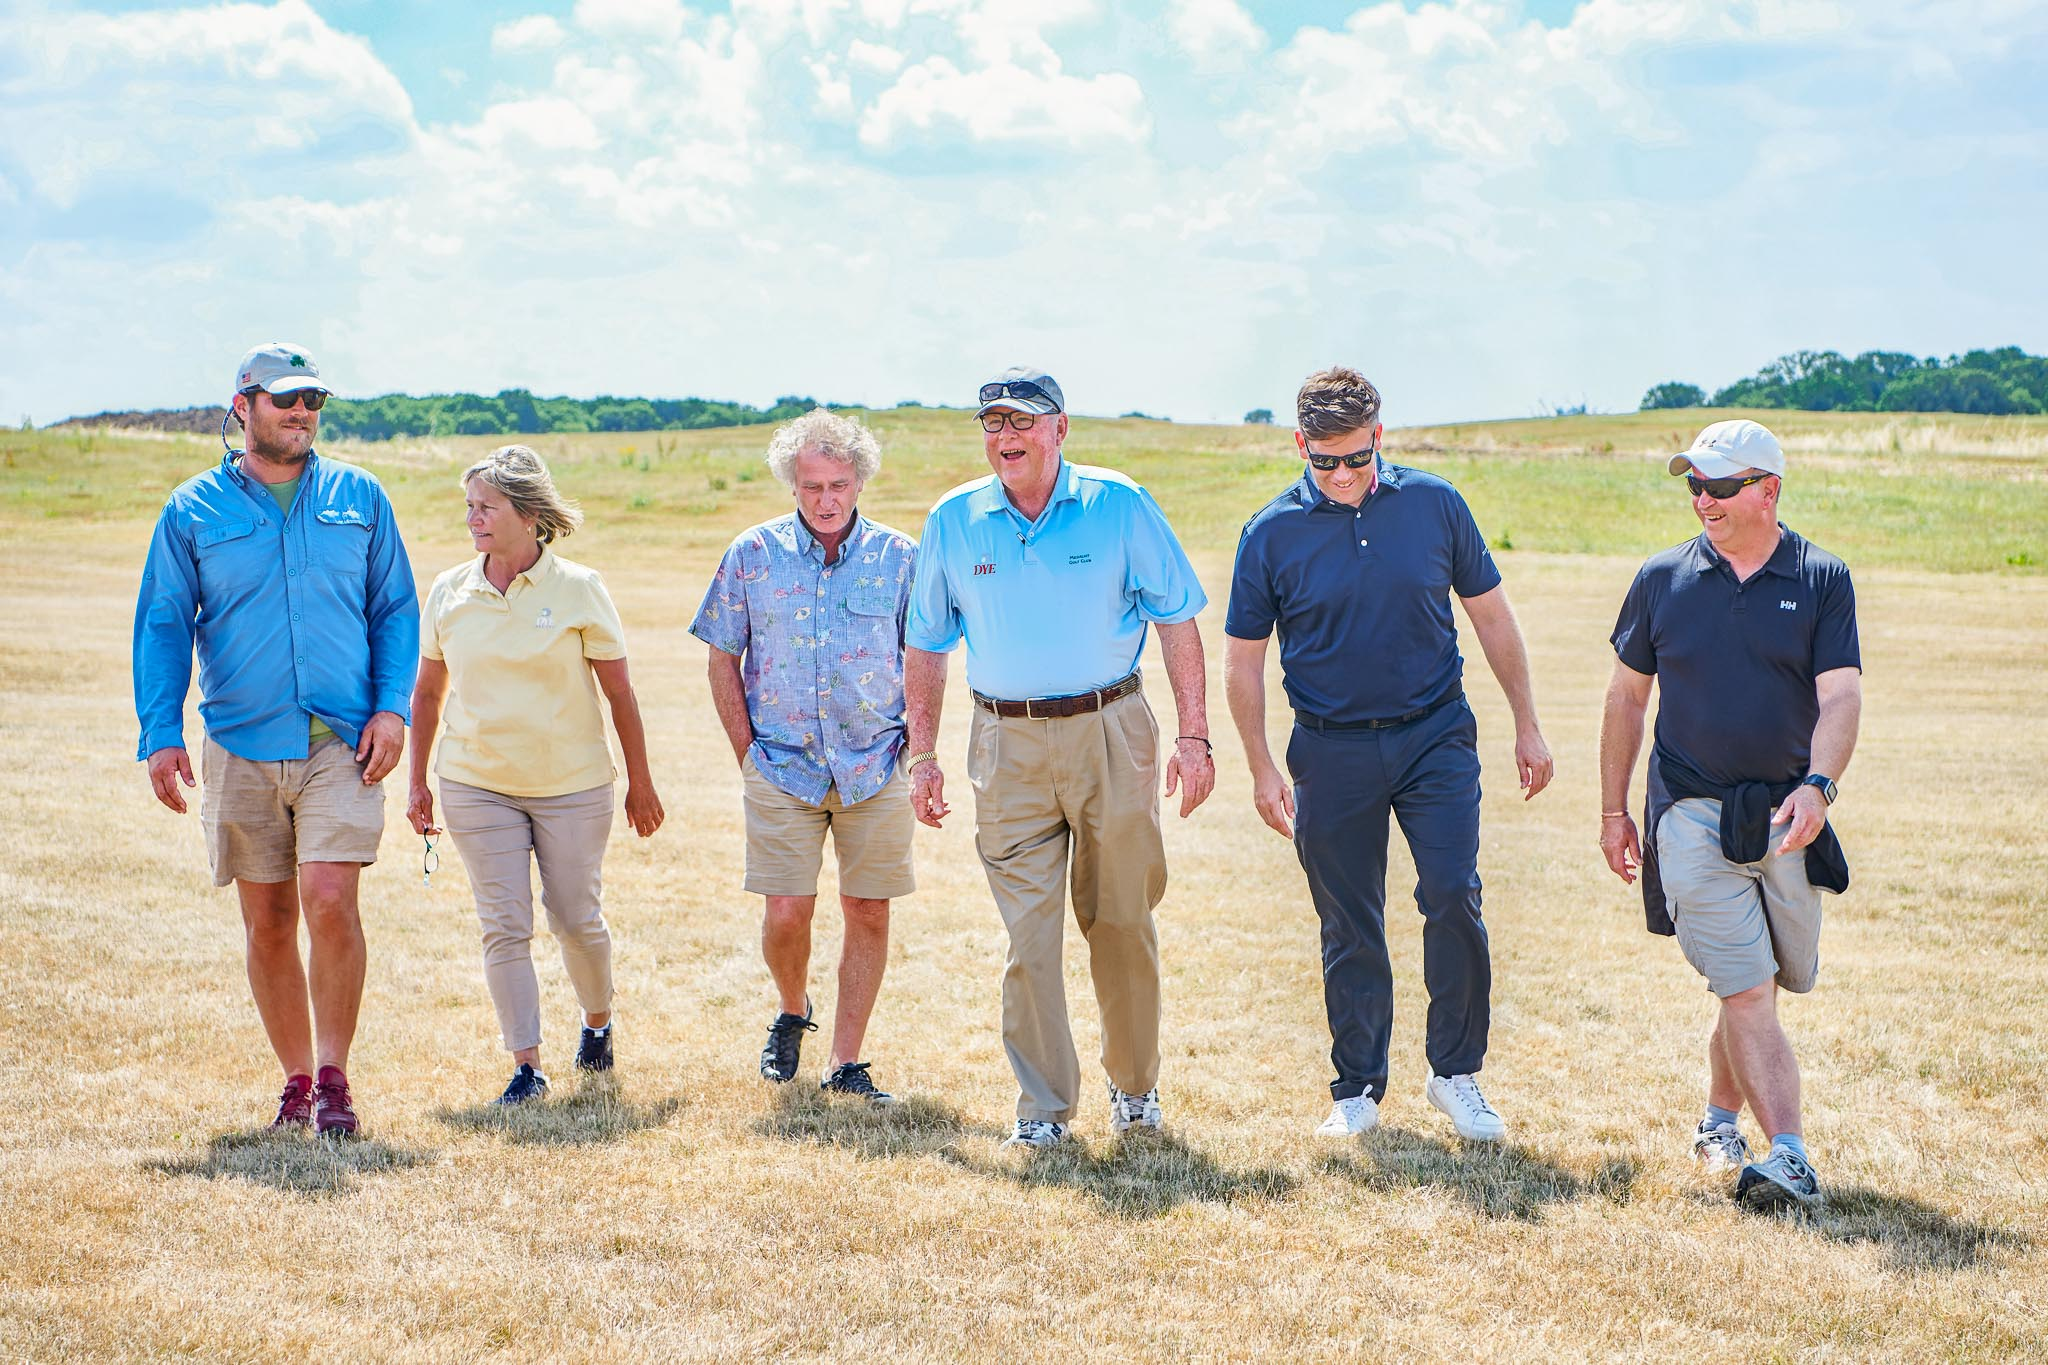 (From left) Matt McGarey, Cynthia Dye, Tony Menai-Davis, Perry Dye, Ceri Menai-Davis and Nigel Ely during a course inspection at West London Links in summer 2018. Photo by Robert Parfitt.